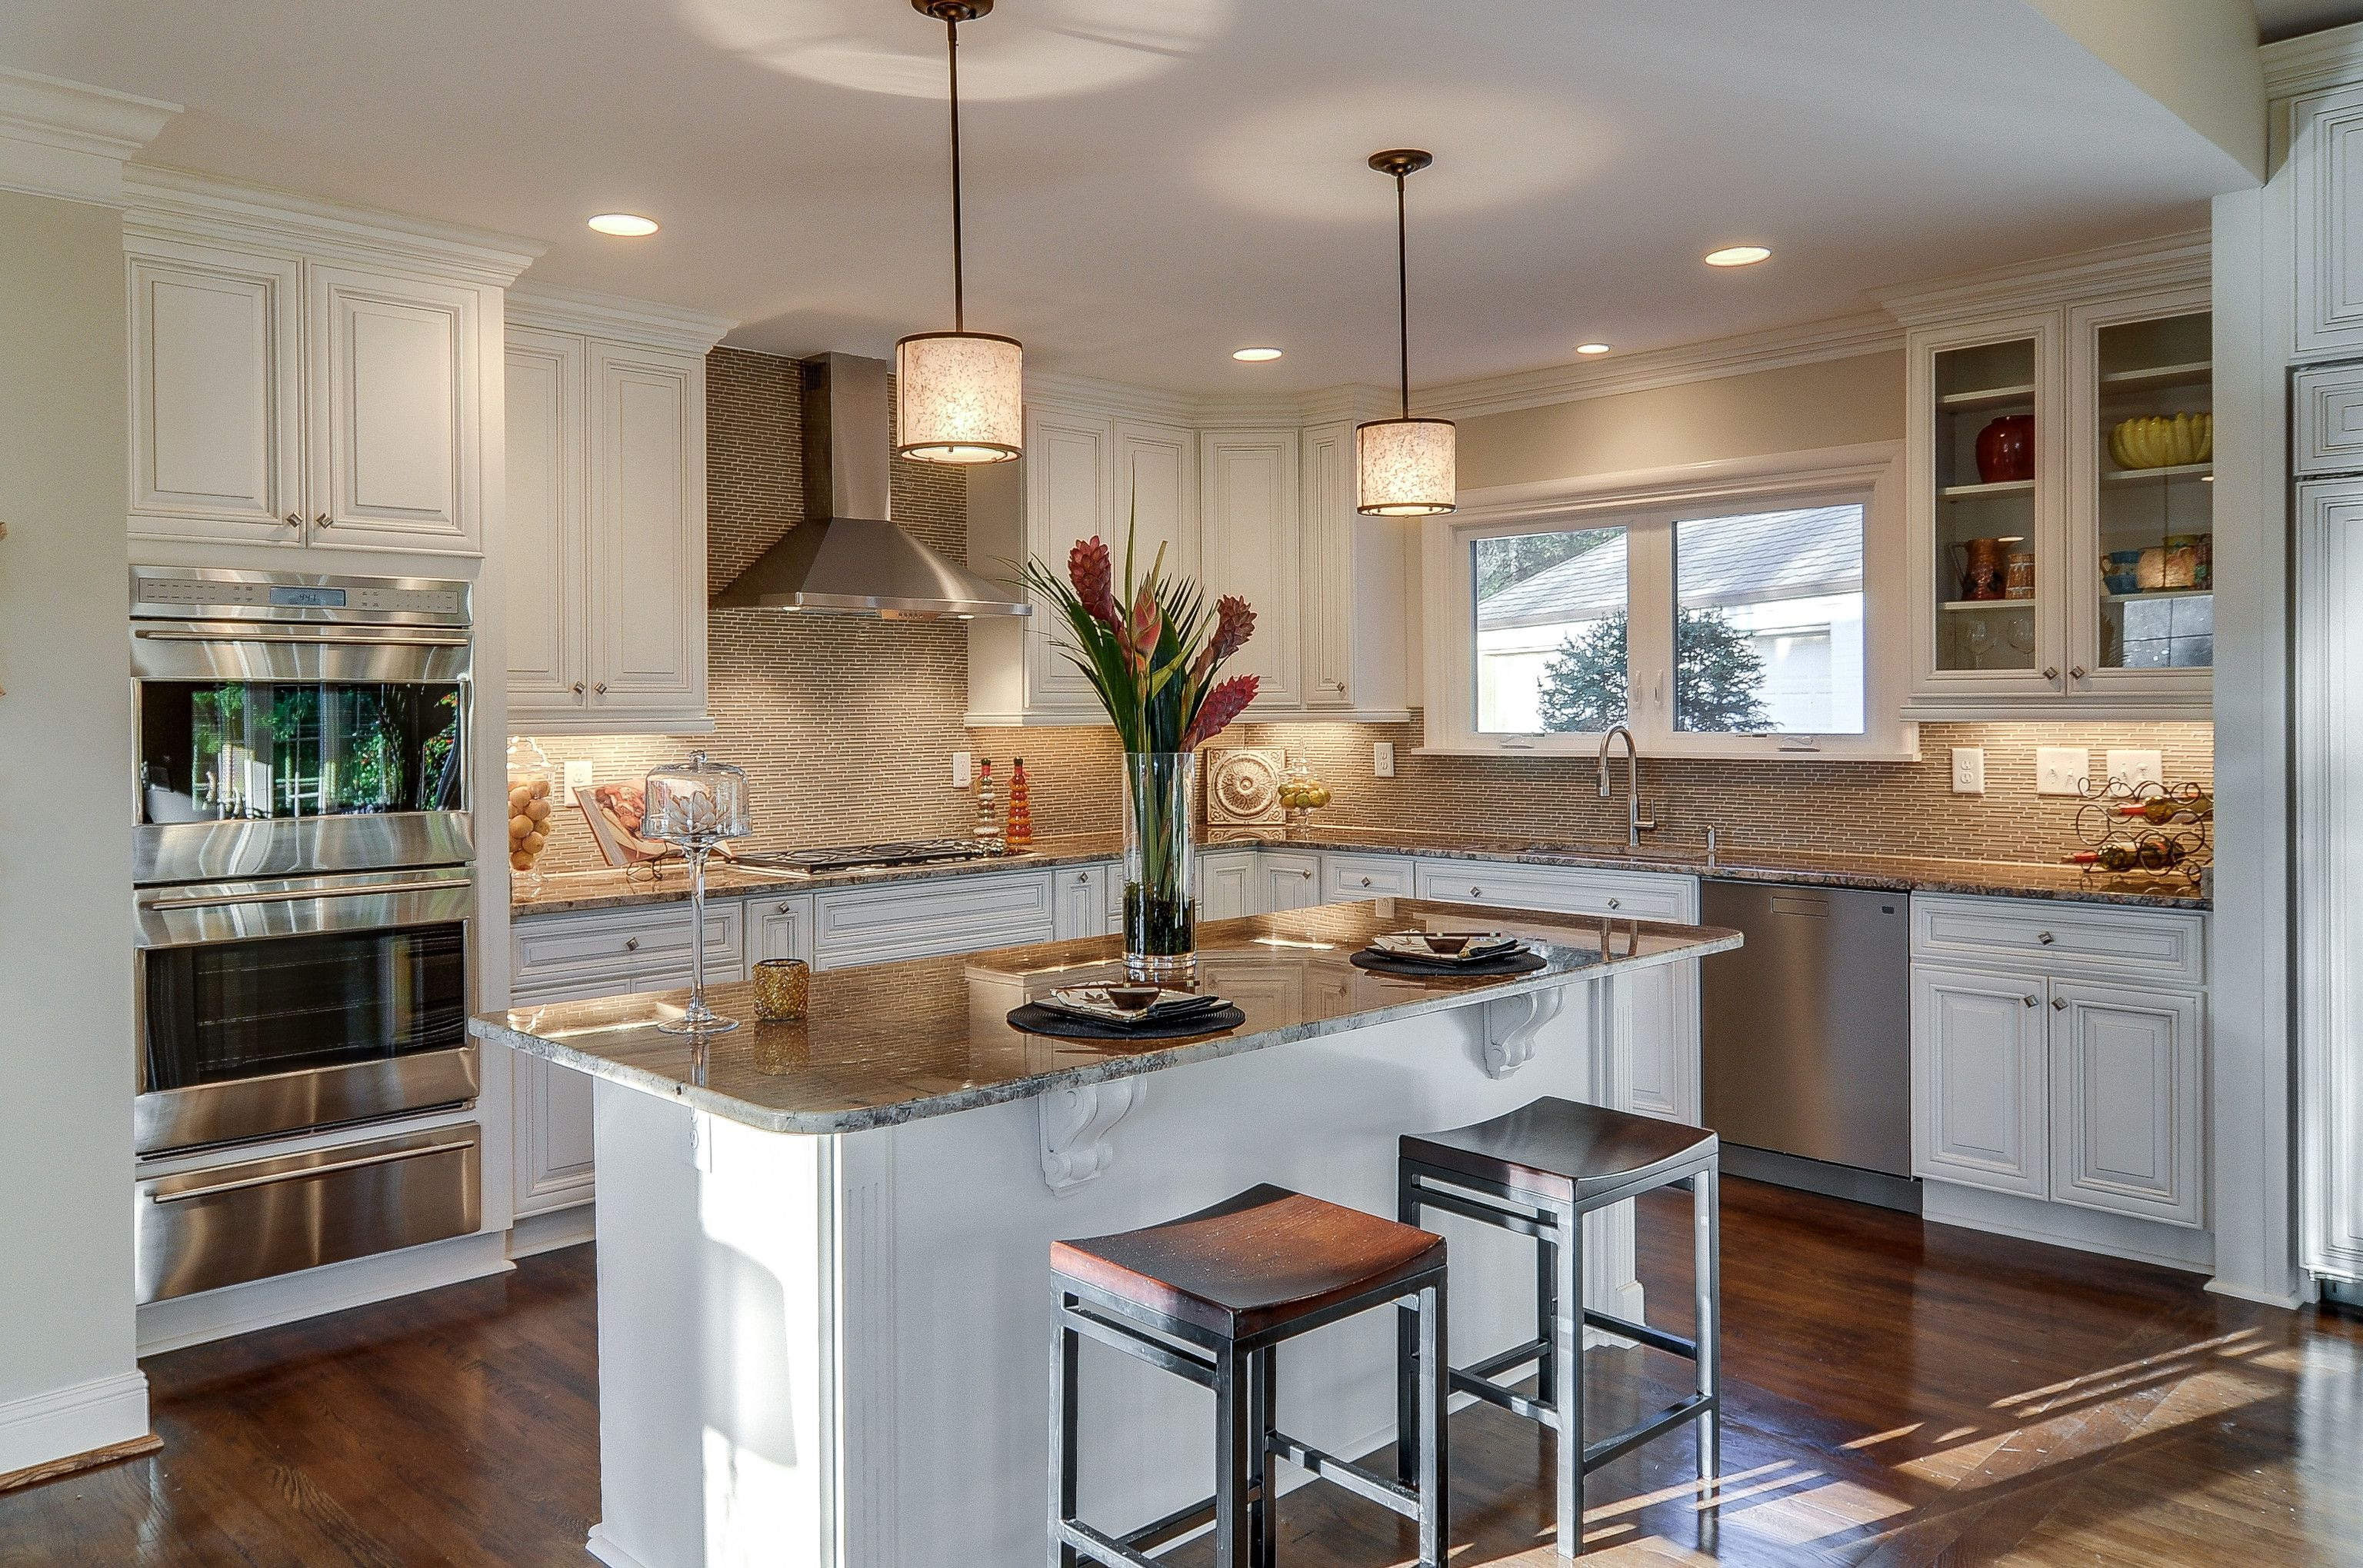 Pin by ProCraft Cabinetry on Light and Fresh   Kitchen ...